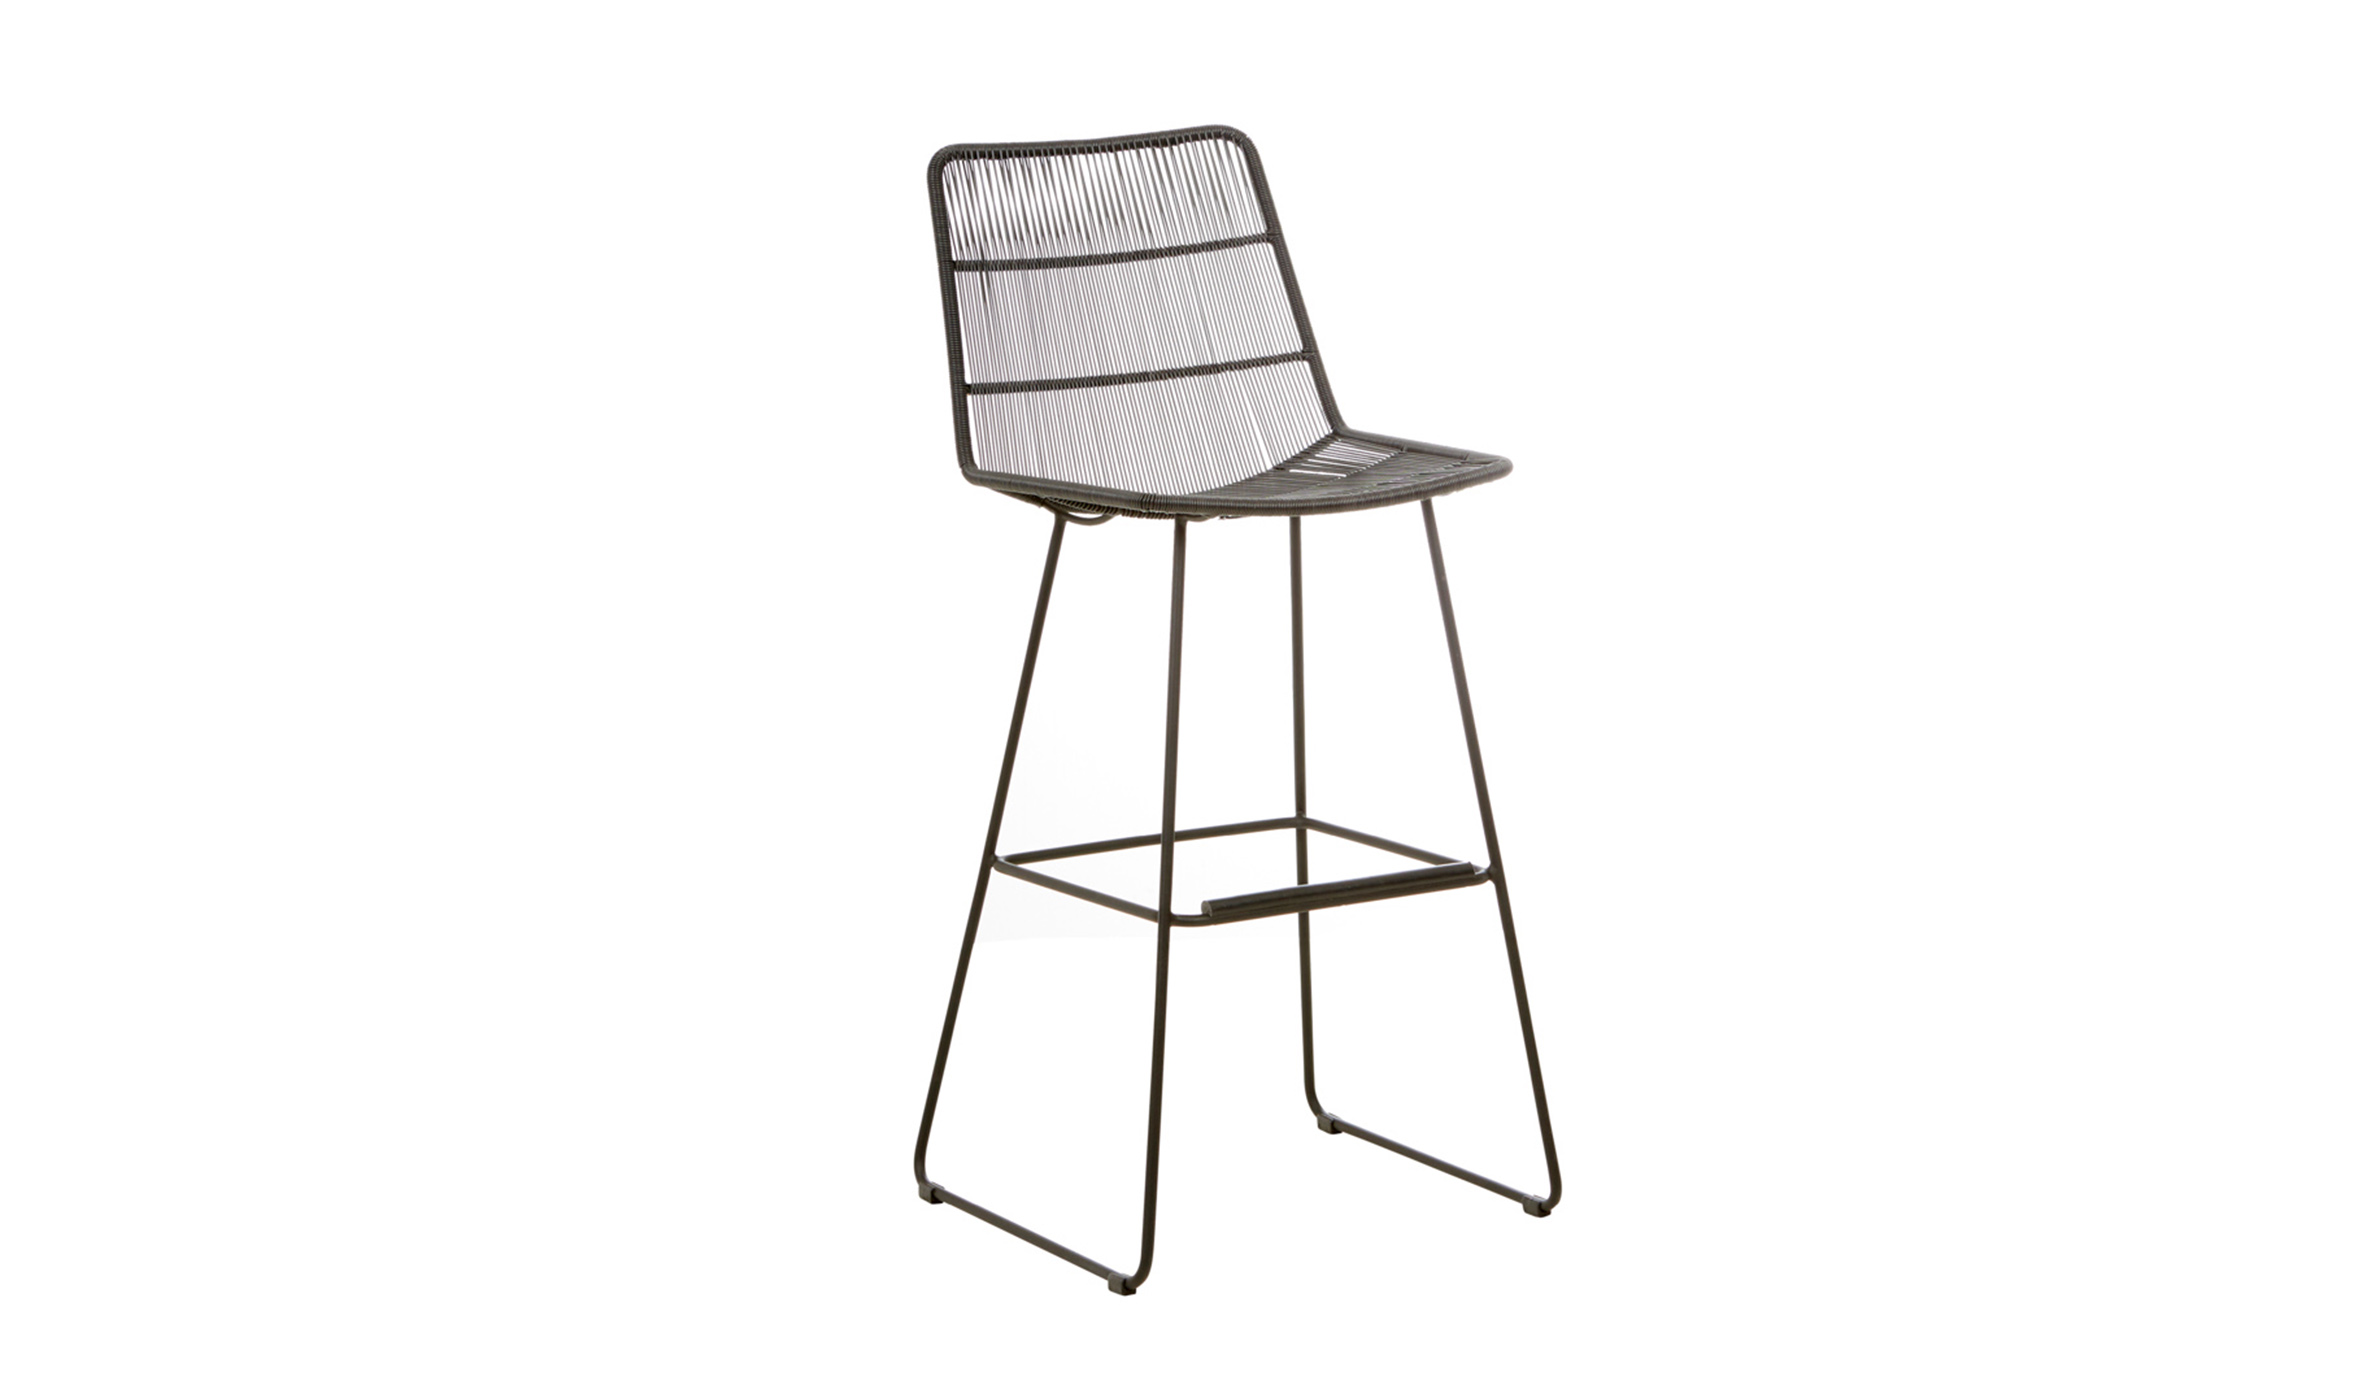 Furniture Thumbnails outdoor-dining-chairs-benches-and-stools-granada-sleigh-bar-100